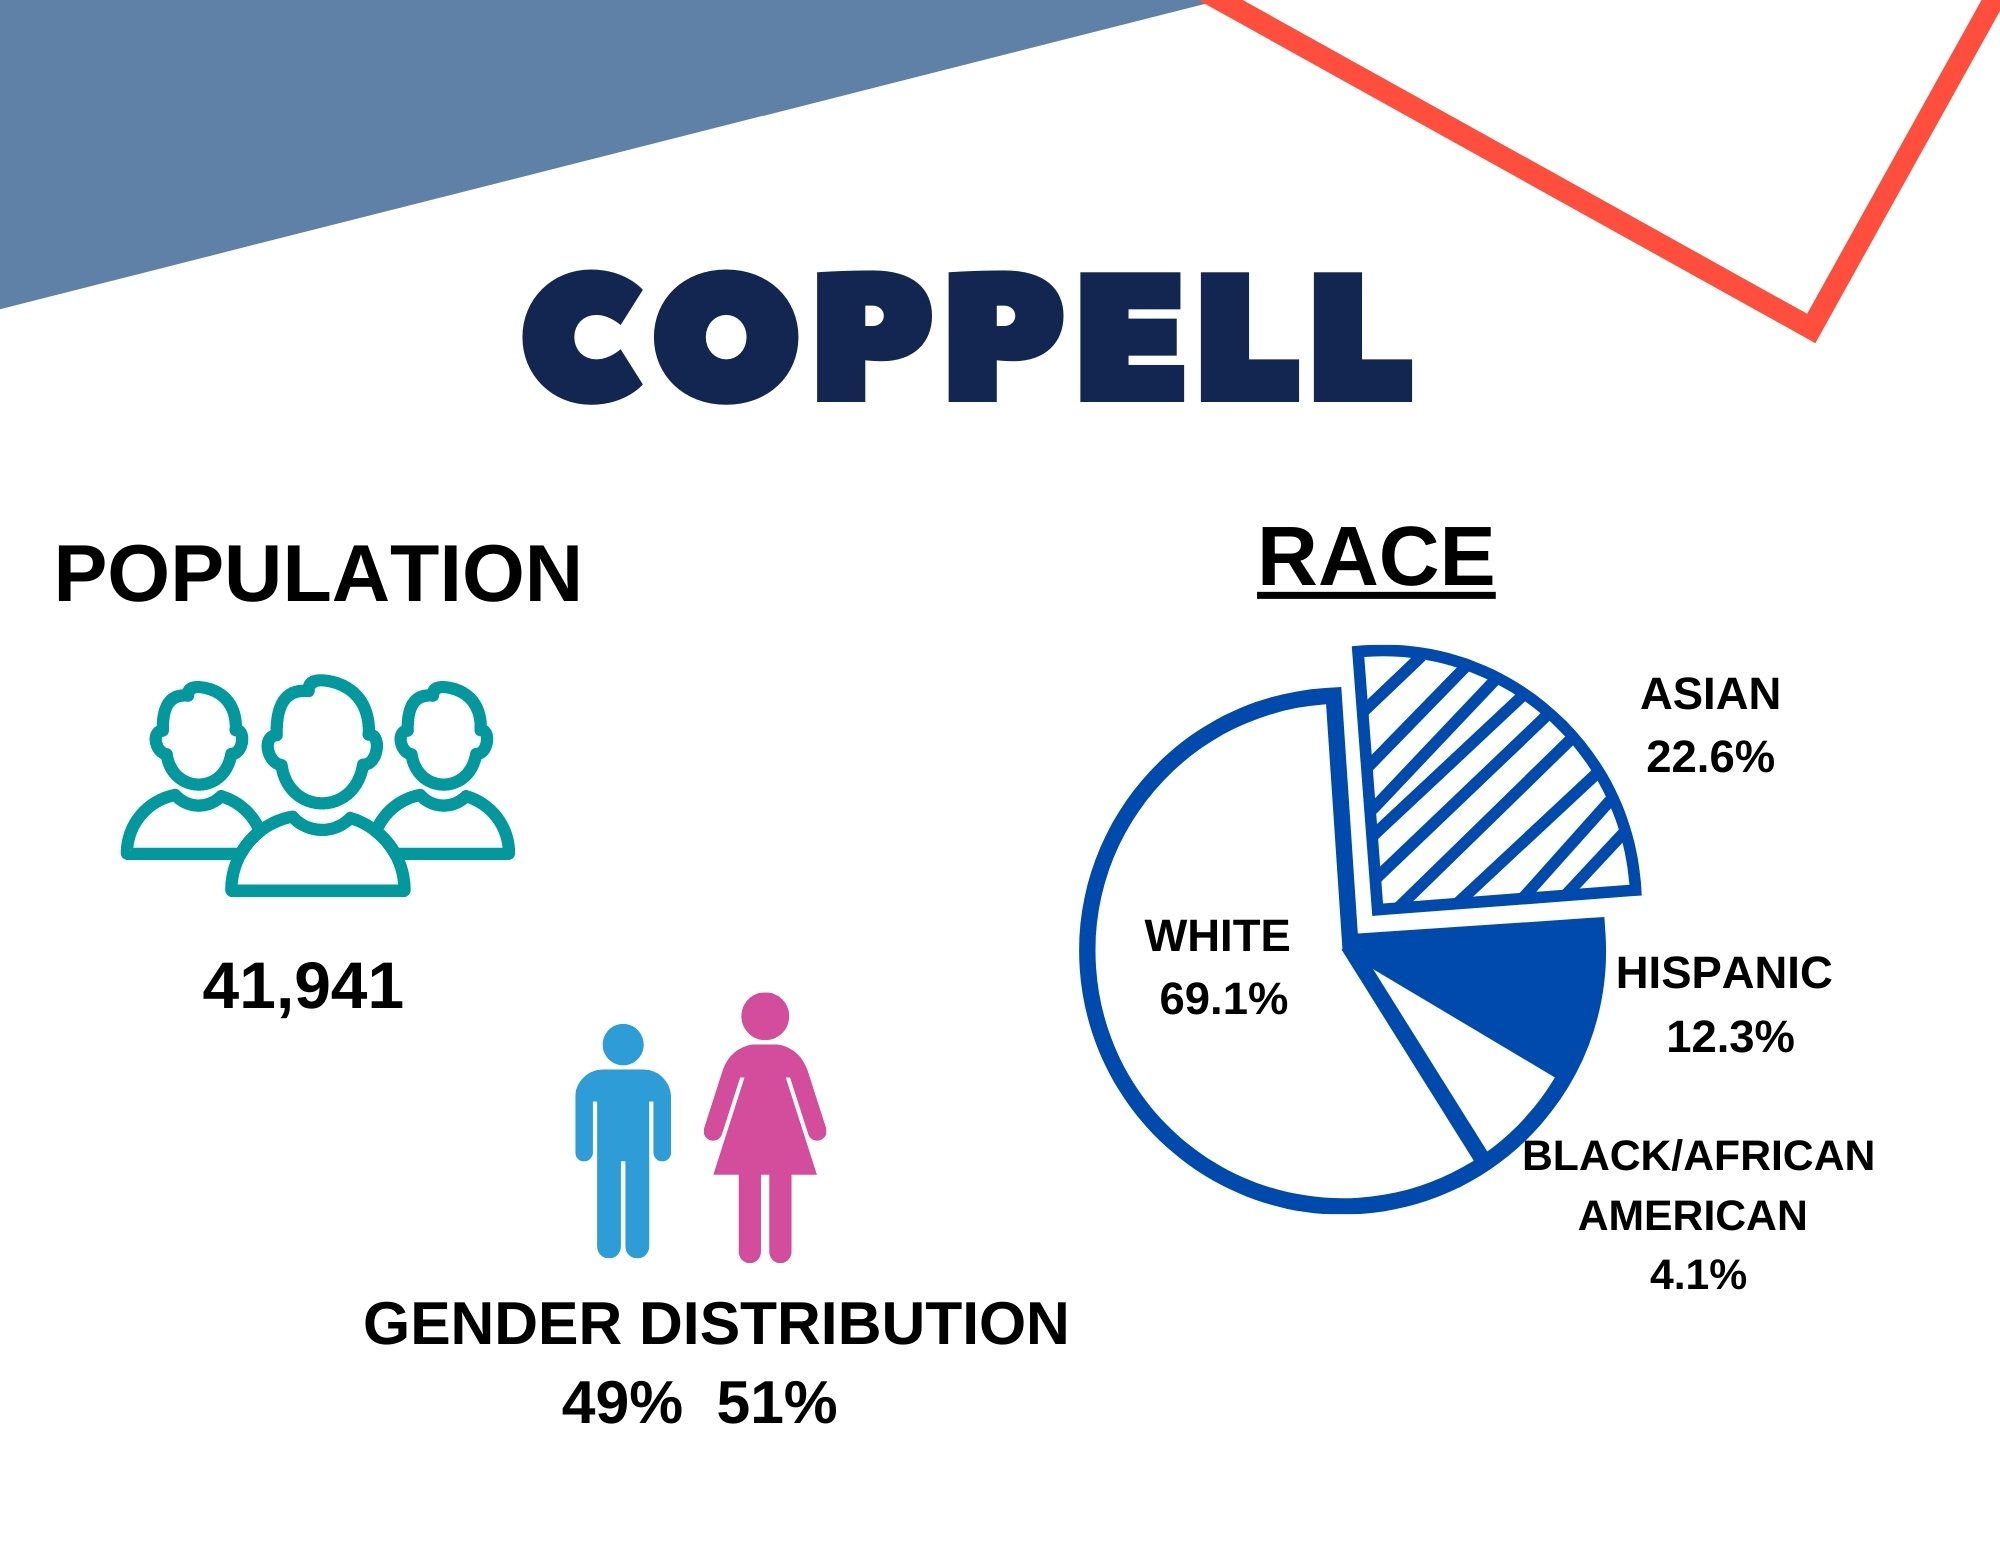 coppell-Demographics1.jpg